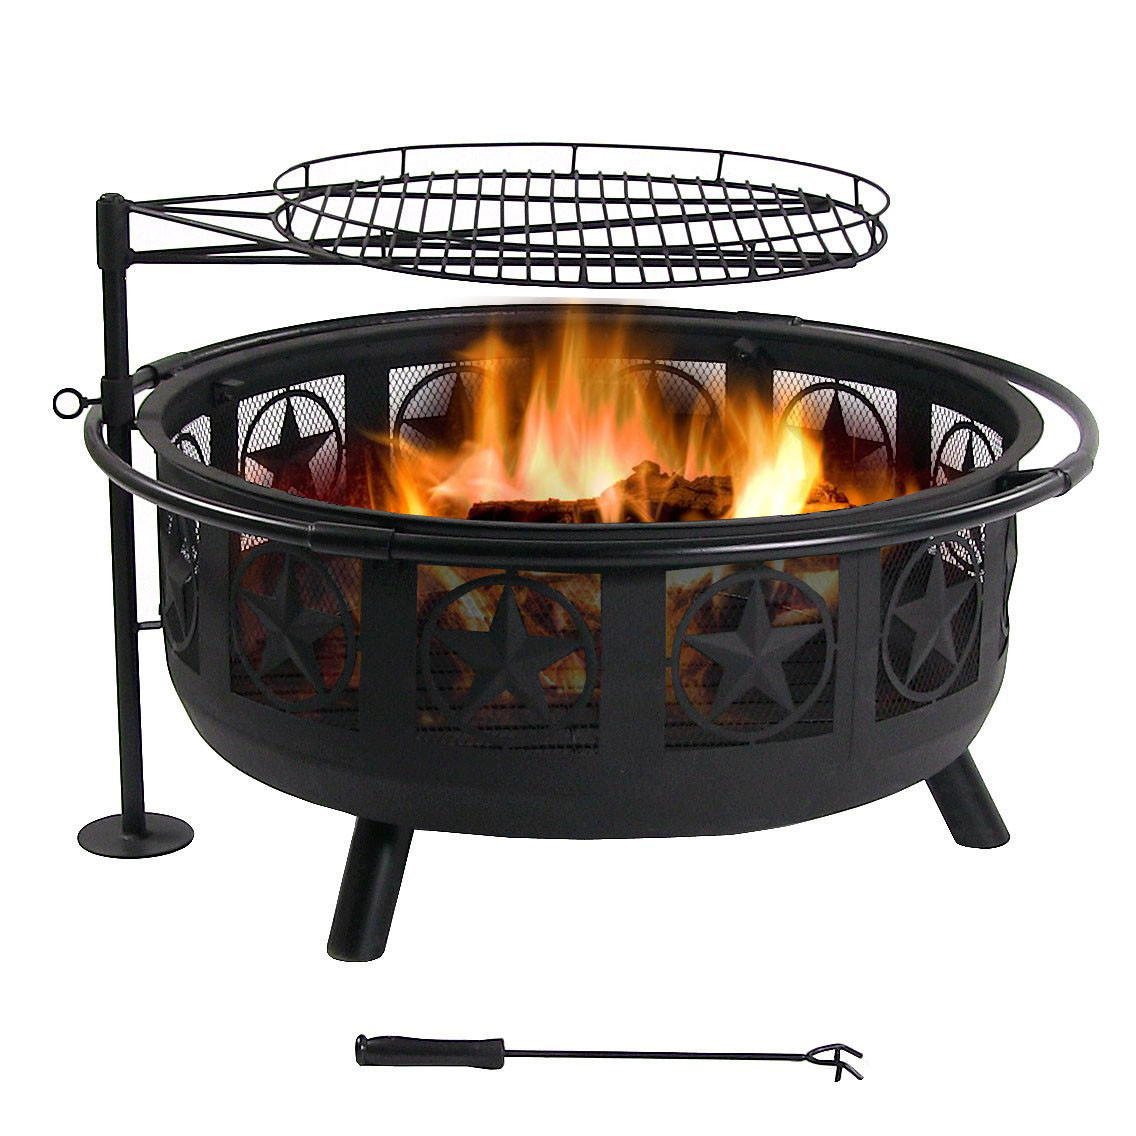 Sunnydaze All Star Fire Pit Cooking Grate Diameter Picture 314